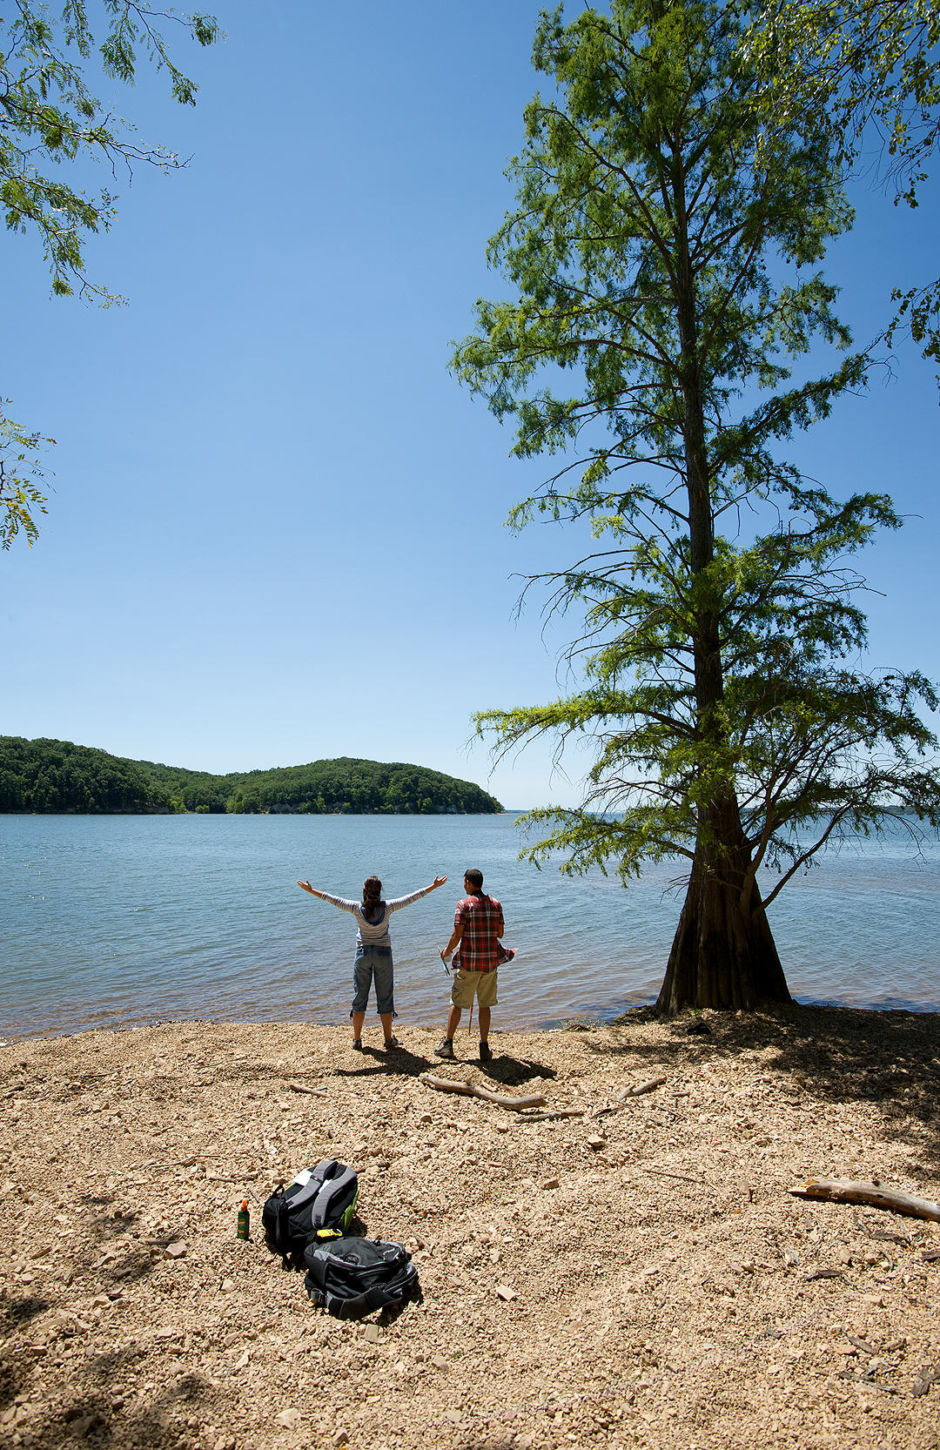 9 great places in Kentucky you've probably never heard of